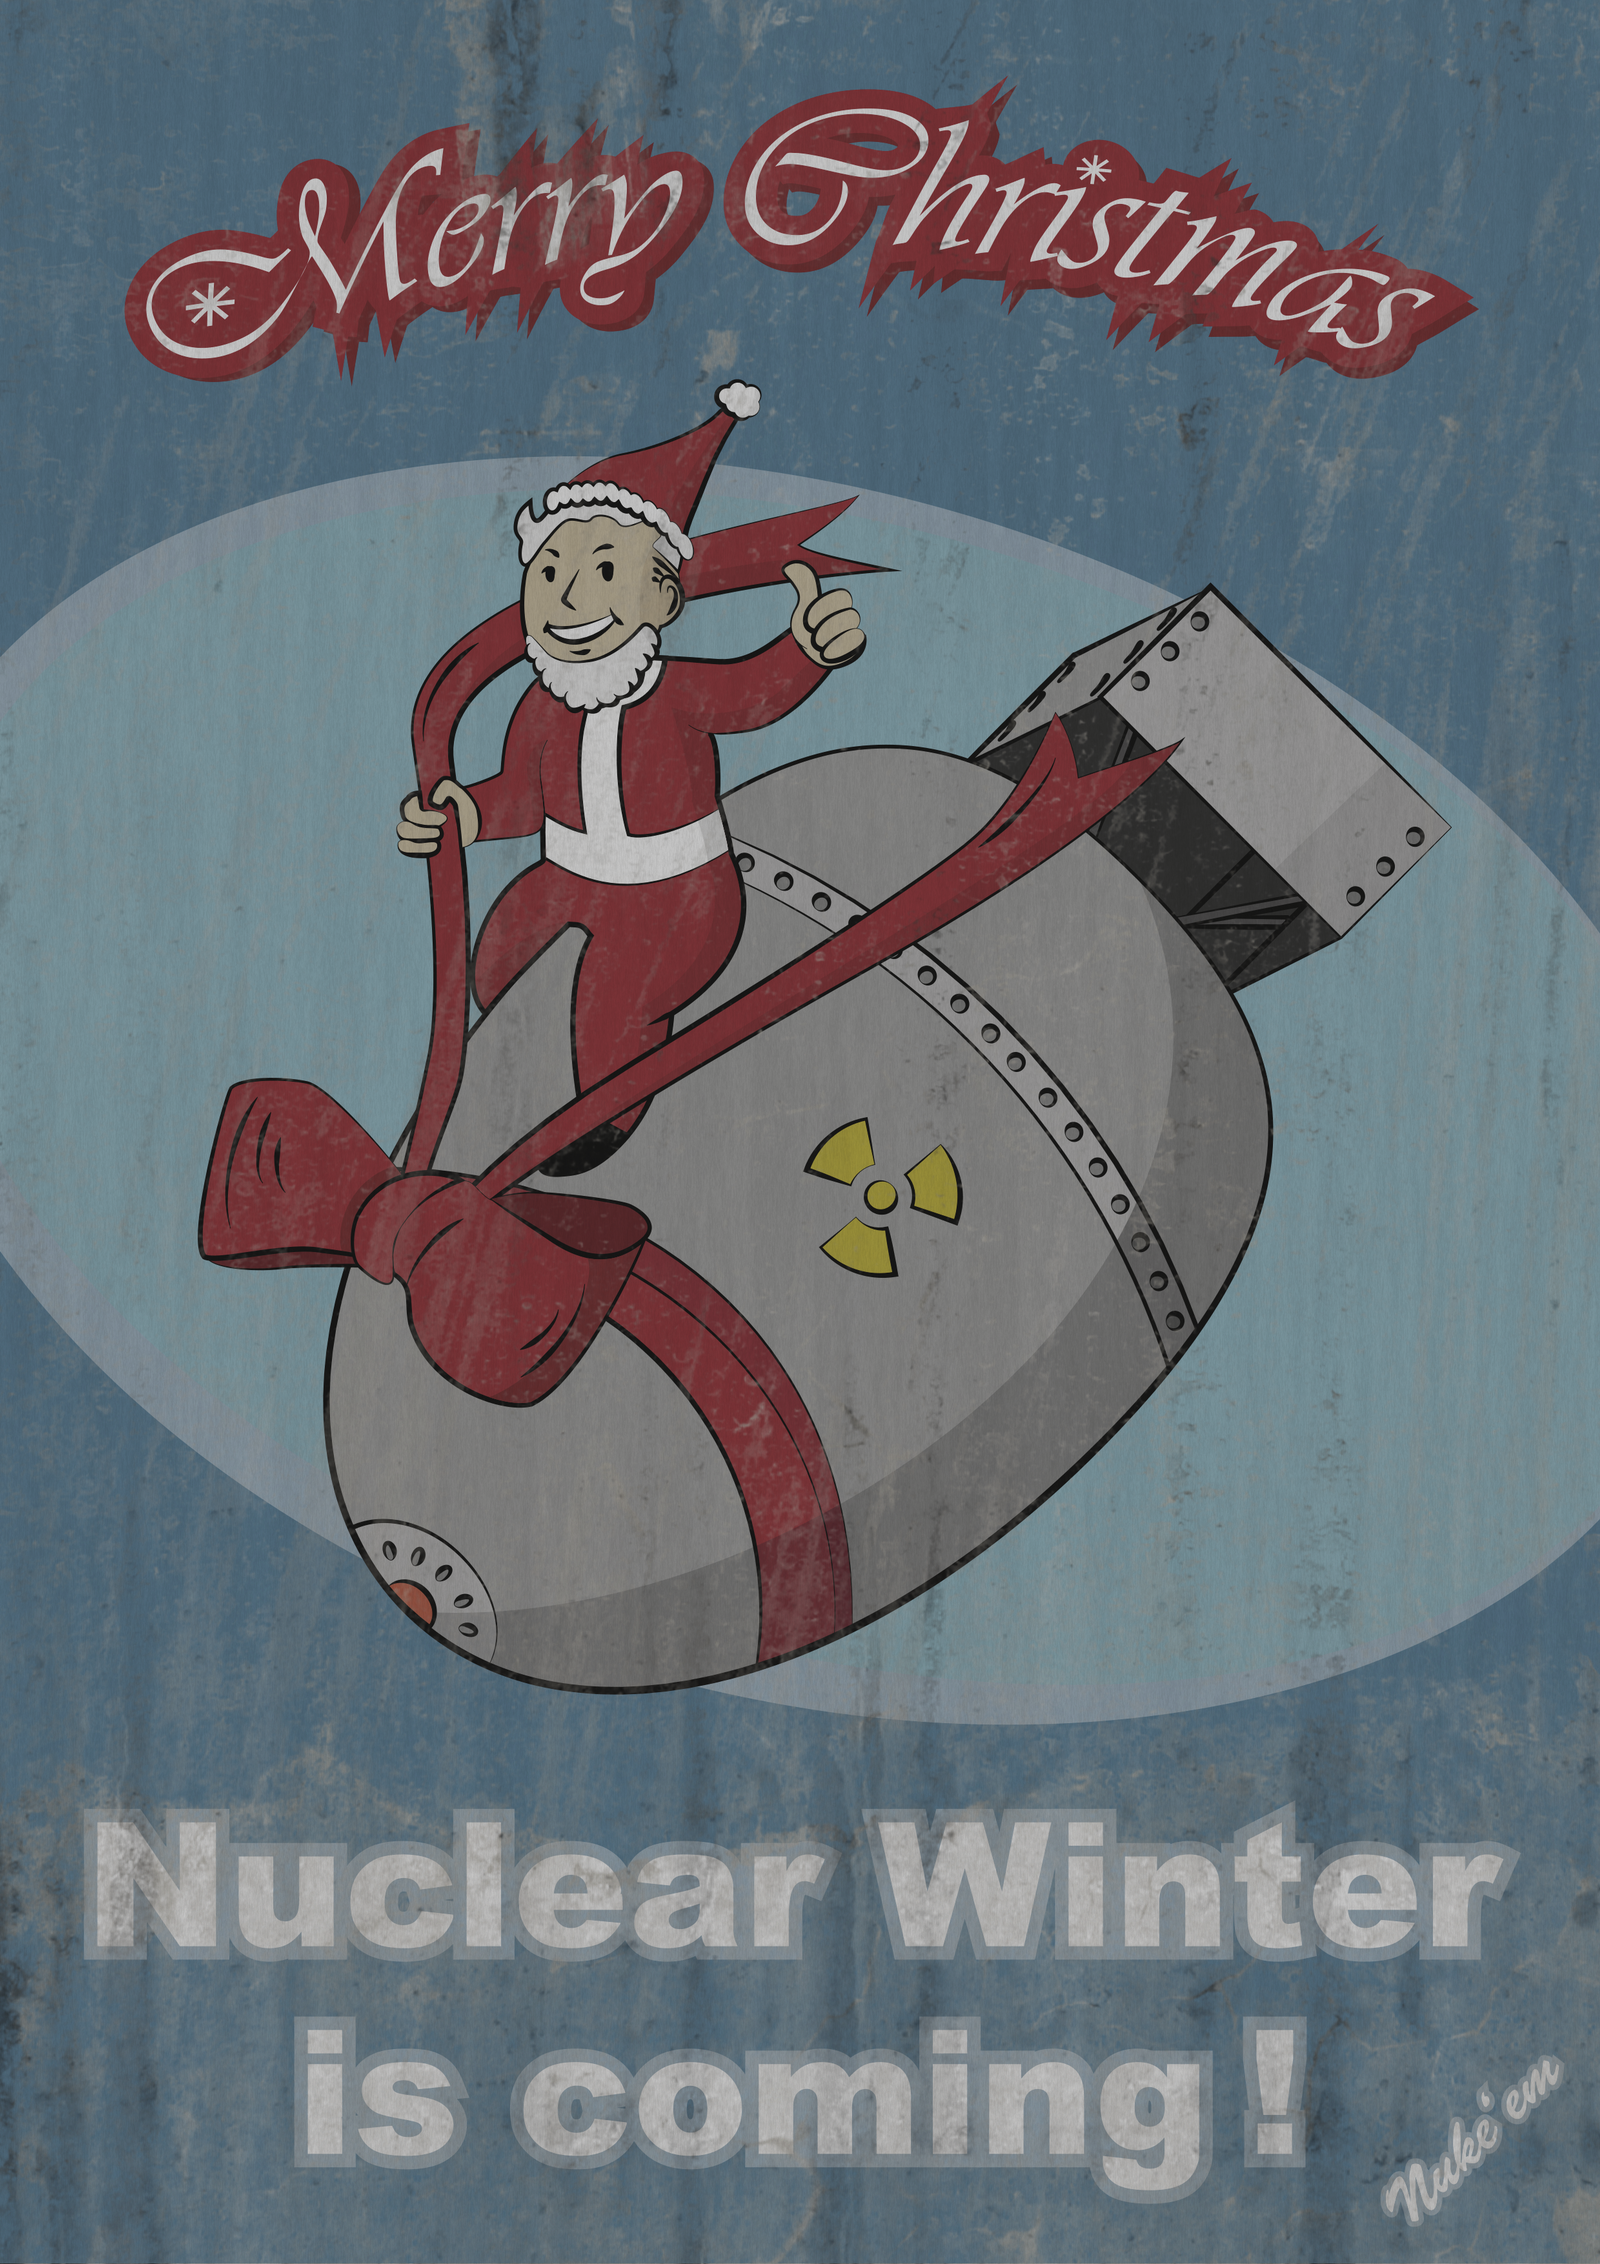 marry_chrismas___nuclear_winter_is_coming___nuked__by_nuke_em_all d6xkwcp marry chrismas nuclear winter is coming! [nuked] by nuke em all